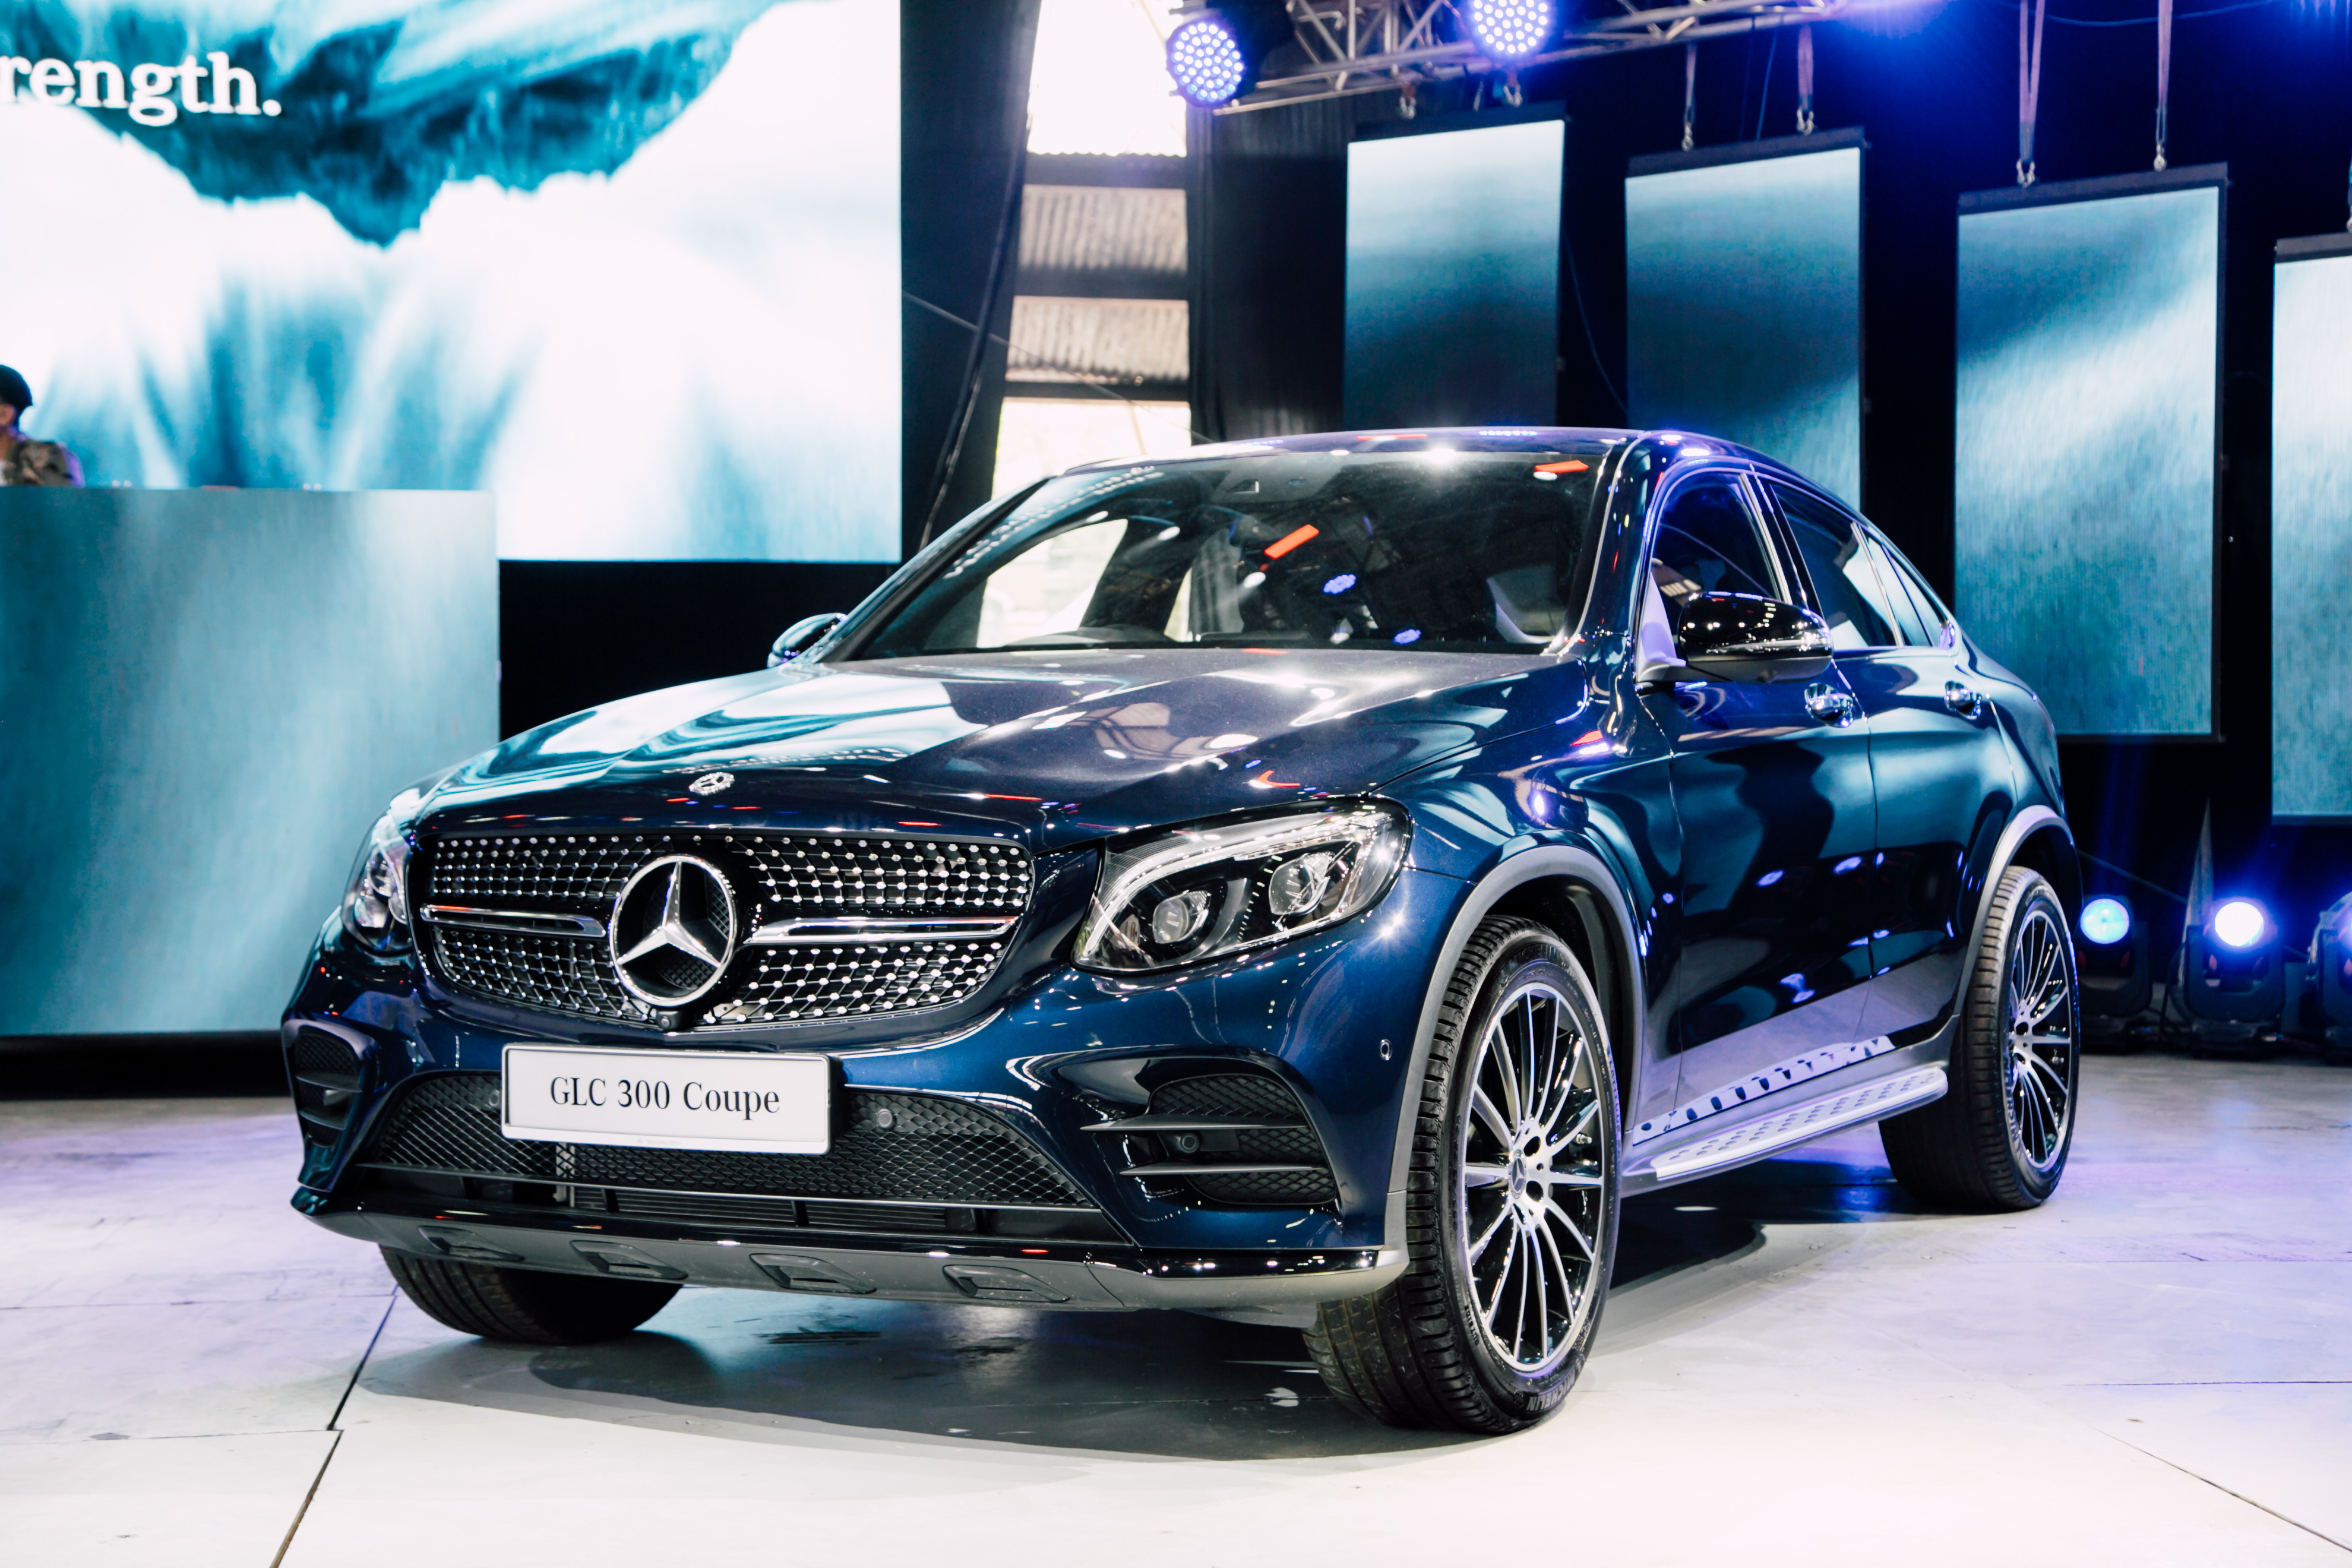 Mercedes Benz Gle 450 Glc 300 Coupe Amg Line Launched From Rm399 888 News And Reviews On Malaysian Cars Motorcycles And Automotive Lifestyle